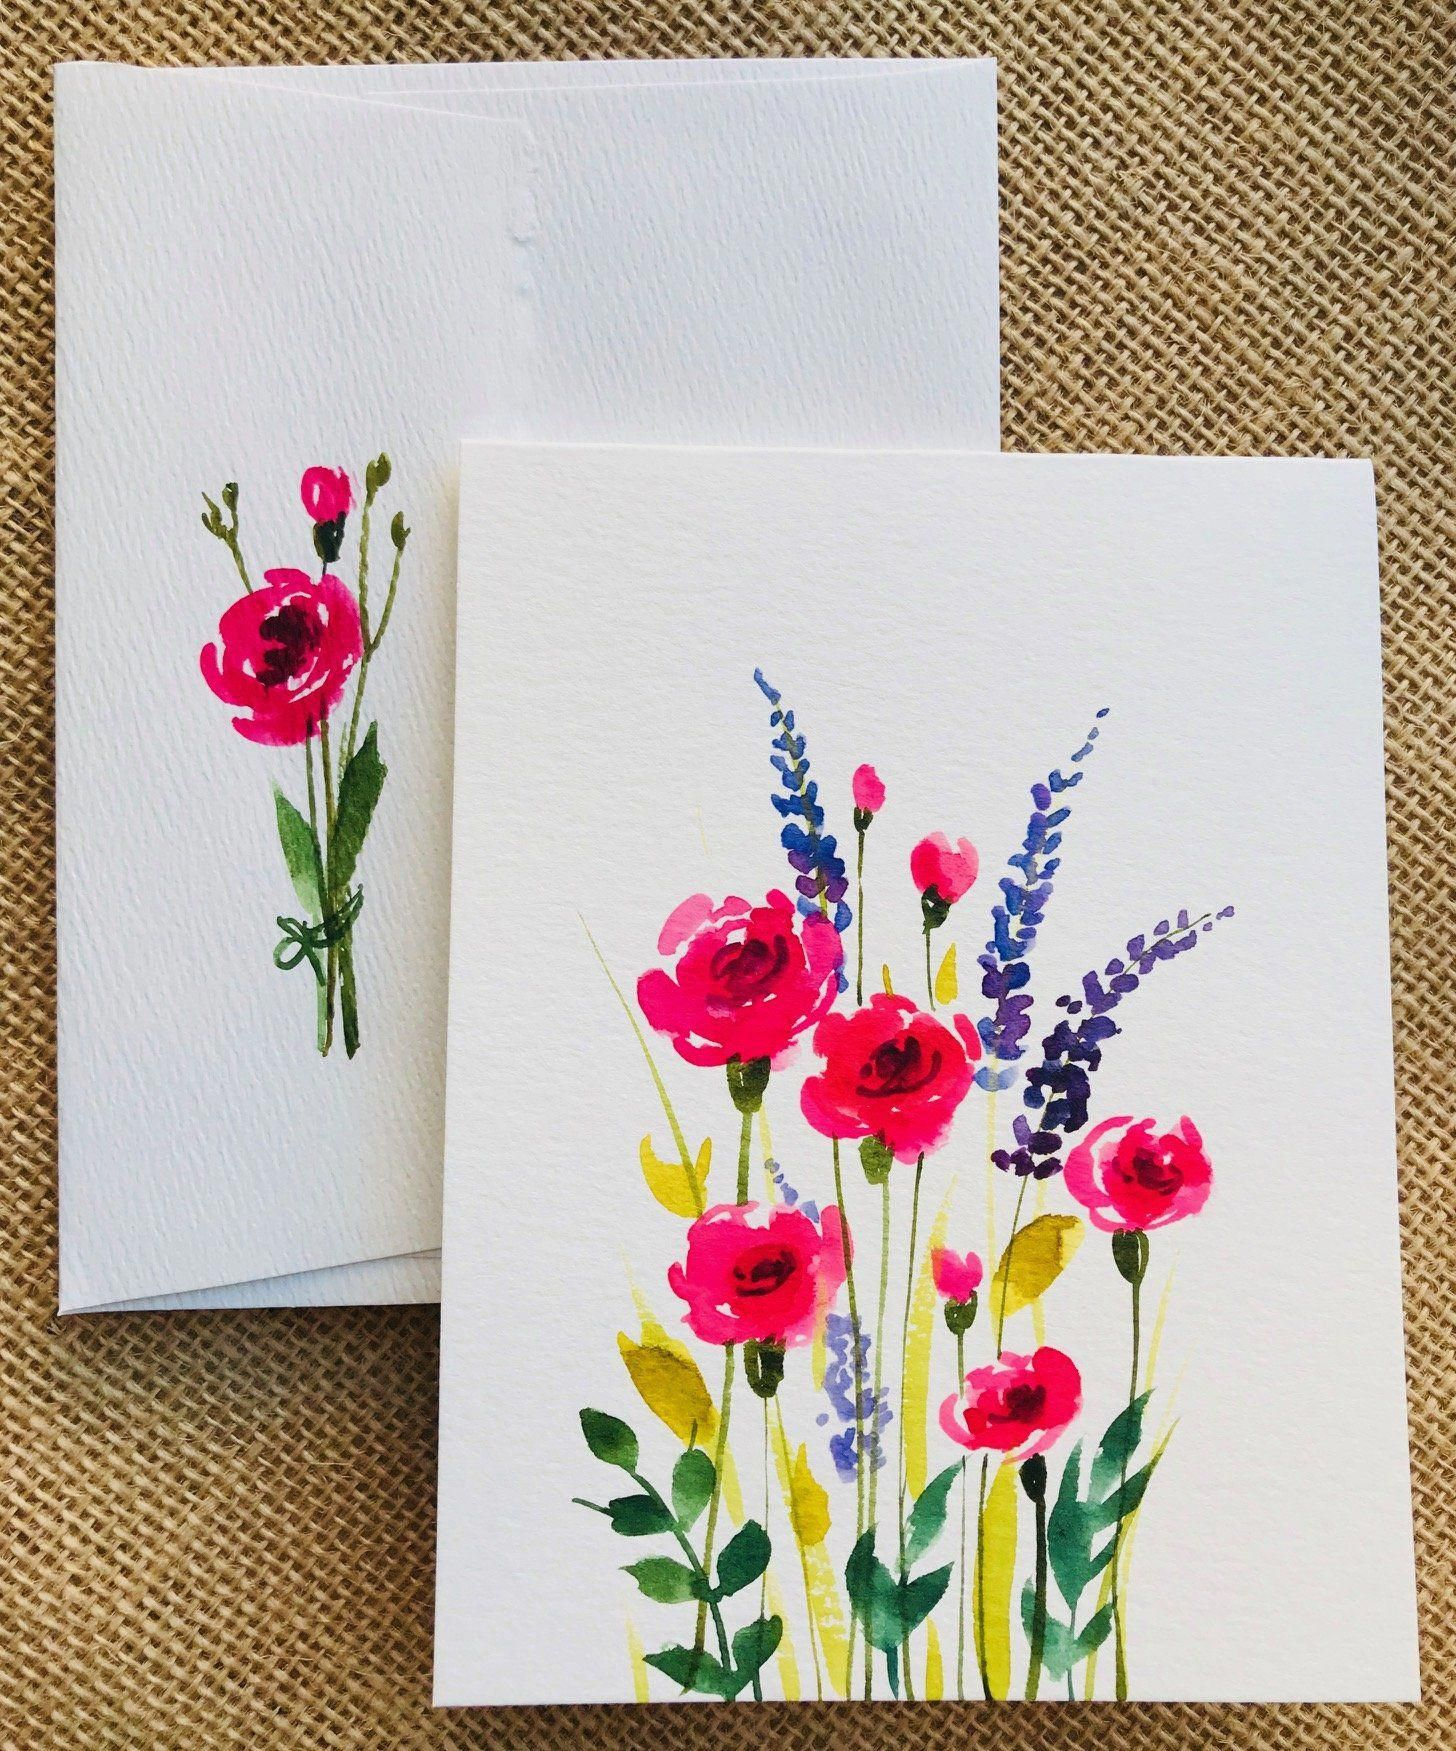 Birthday Card Painting : birthday, painting, Check, Beautiful, Collection, Painted, Greeting, Cards, Flowers!, Quality…, Watercolor, Cards,, Flower, Drawing